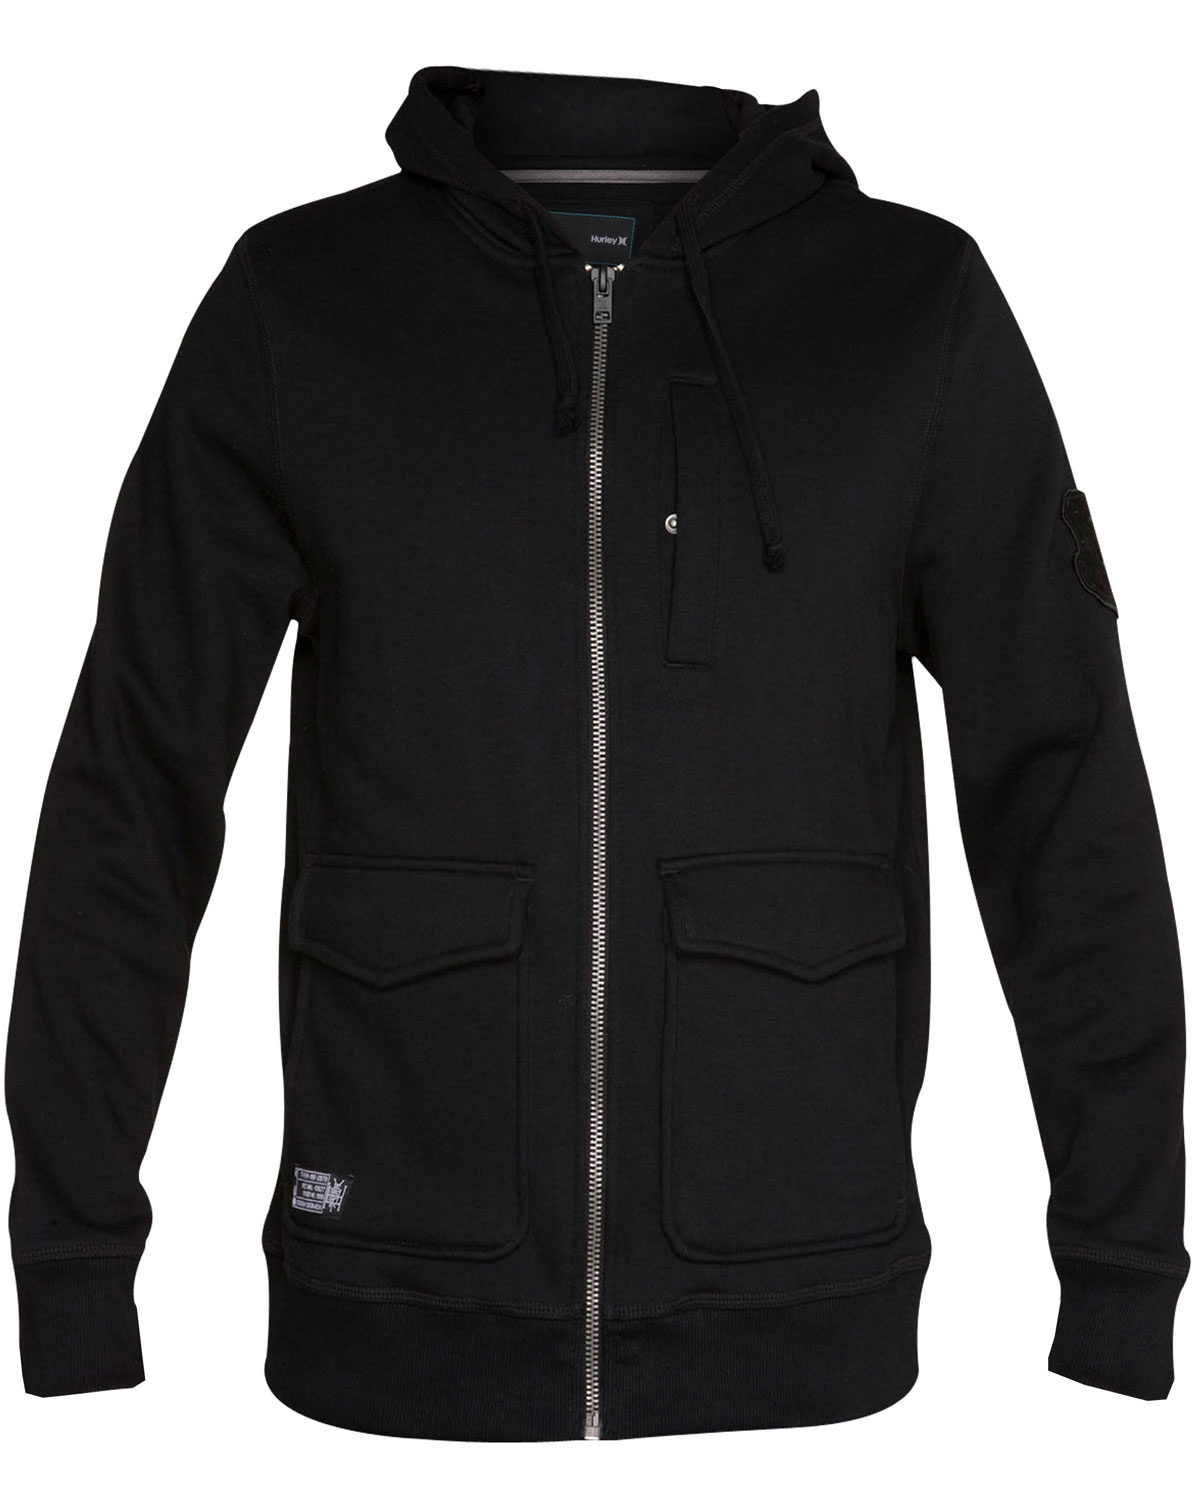 Surf Key Features of the Hurley Warrant Hoodie: Regular Fit 60% cotton/40% polyester Military workwear inspired full zip fleece with two lower pockets - $44.95